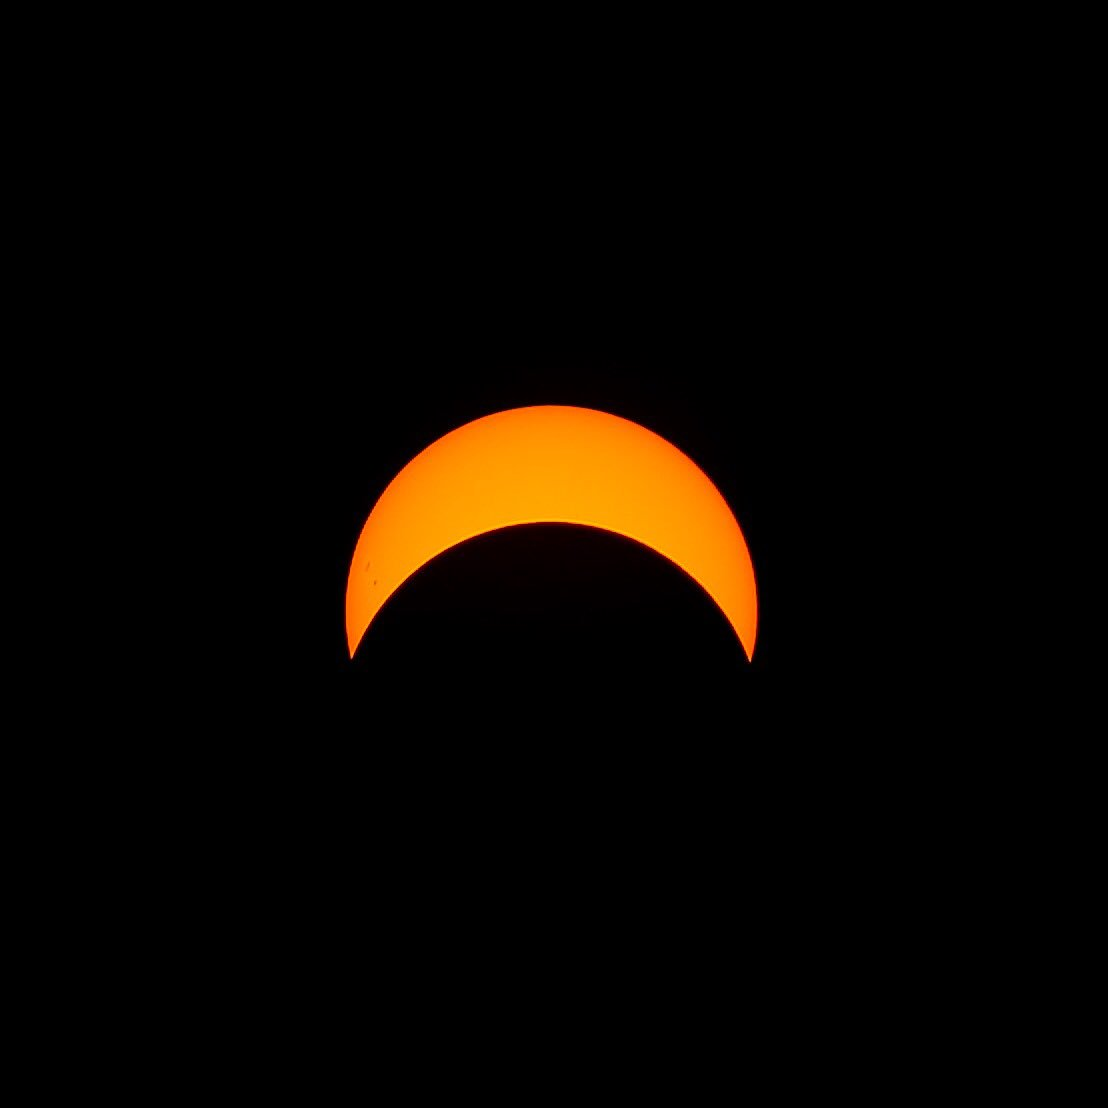 The #Eclipse2017  reaches its maximum coverage over #ygk <br>http://pic.twitter.com/AevcMpDtzg